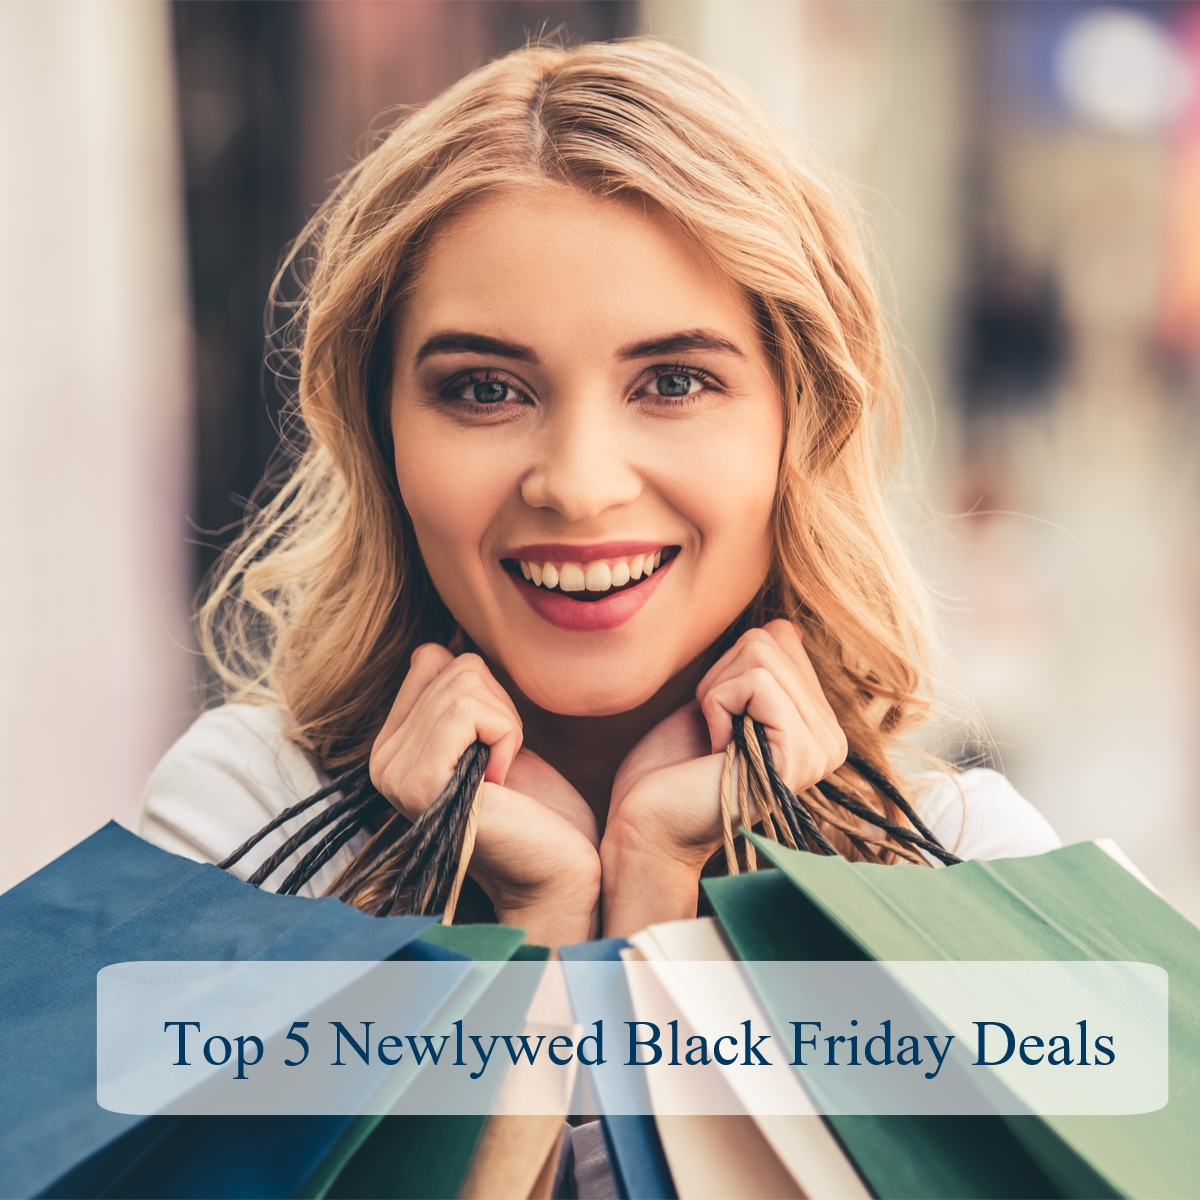 Top 5 Black Friday Deals For Newlyweds Newlywed Blog